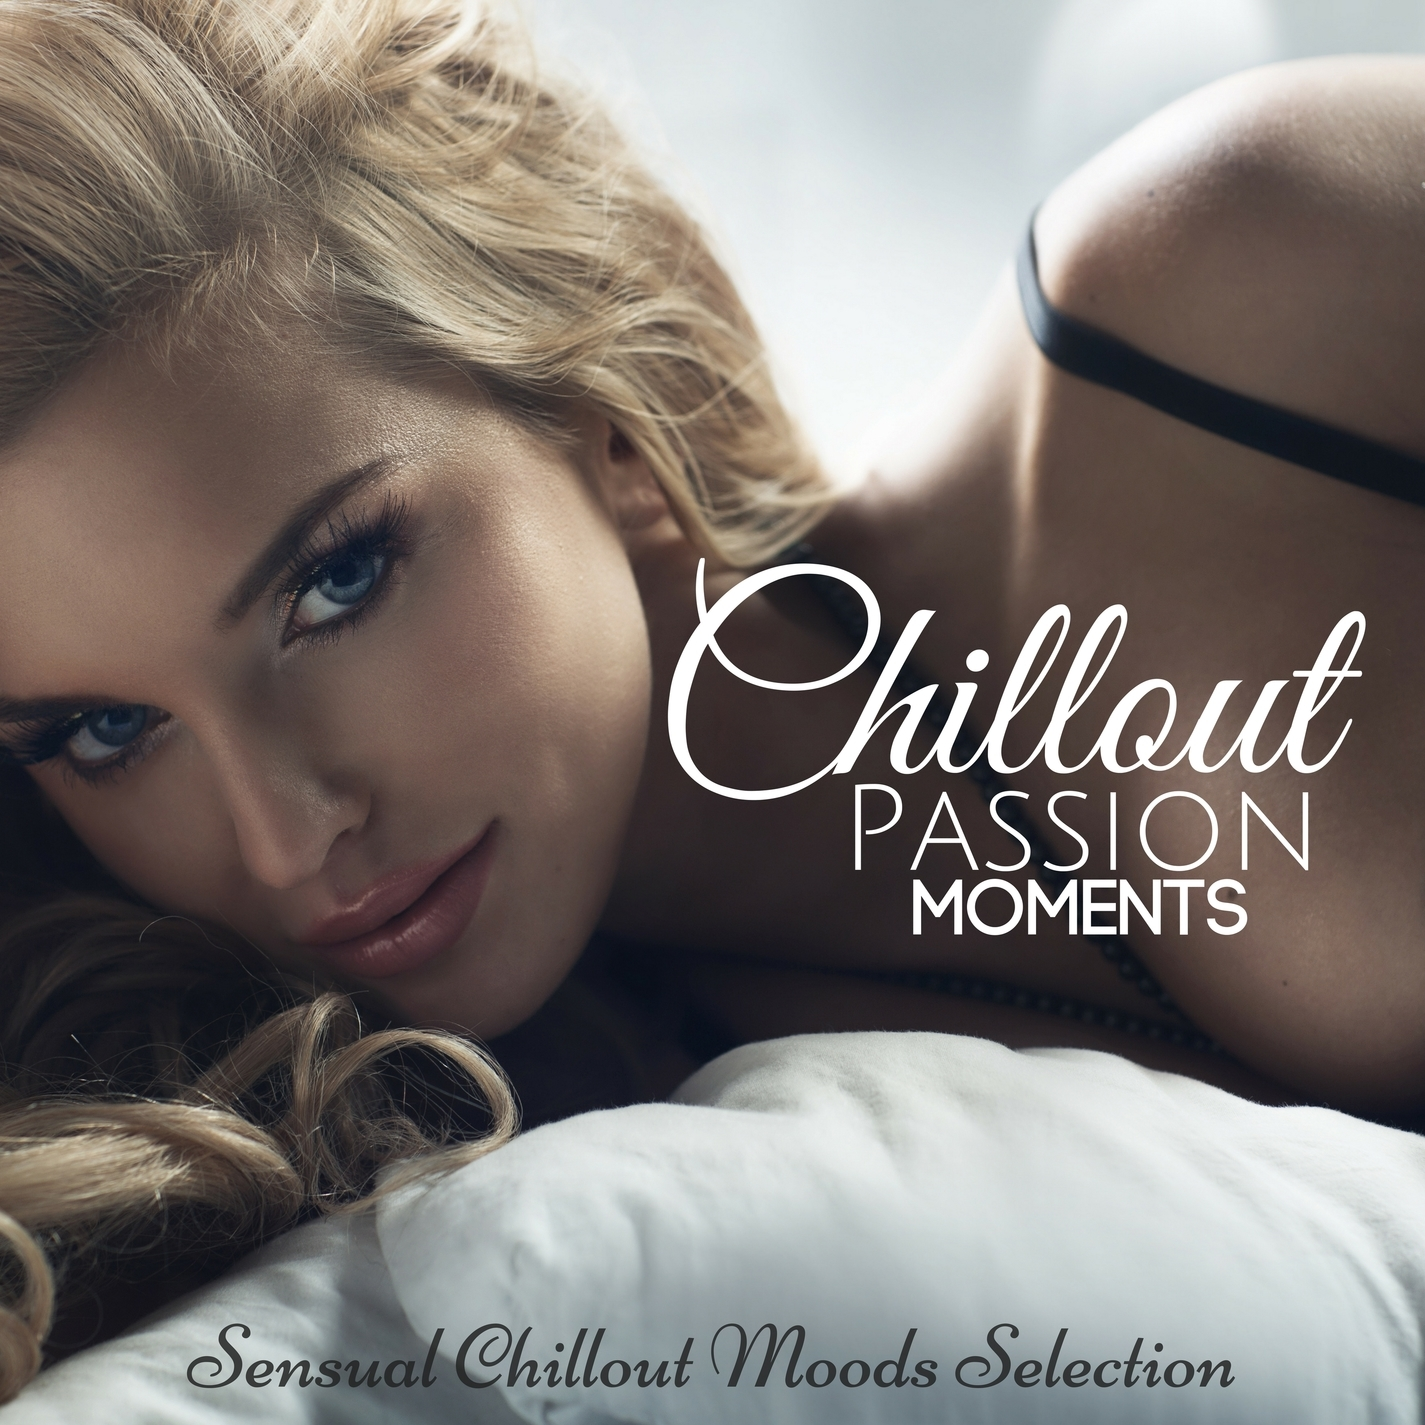 VA-Chillout_Passion_Moments_Sensual_Chillout_Moods_Selection-(SMD170046)-WEB-2017-iHR